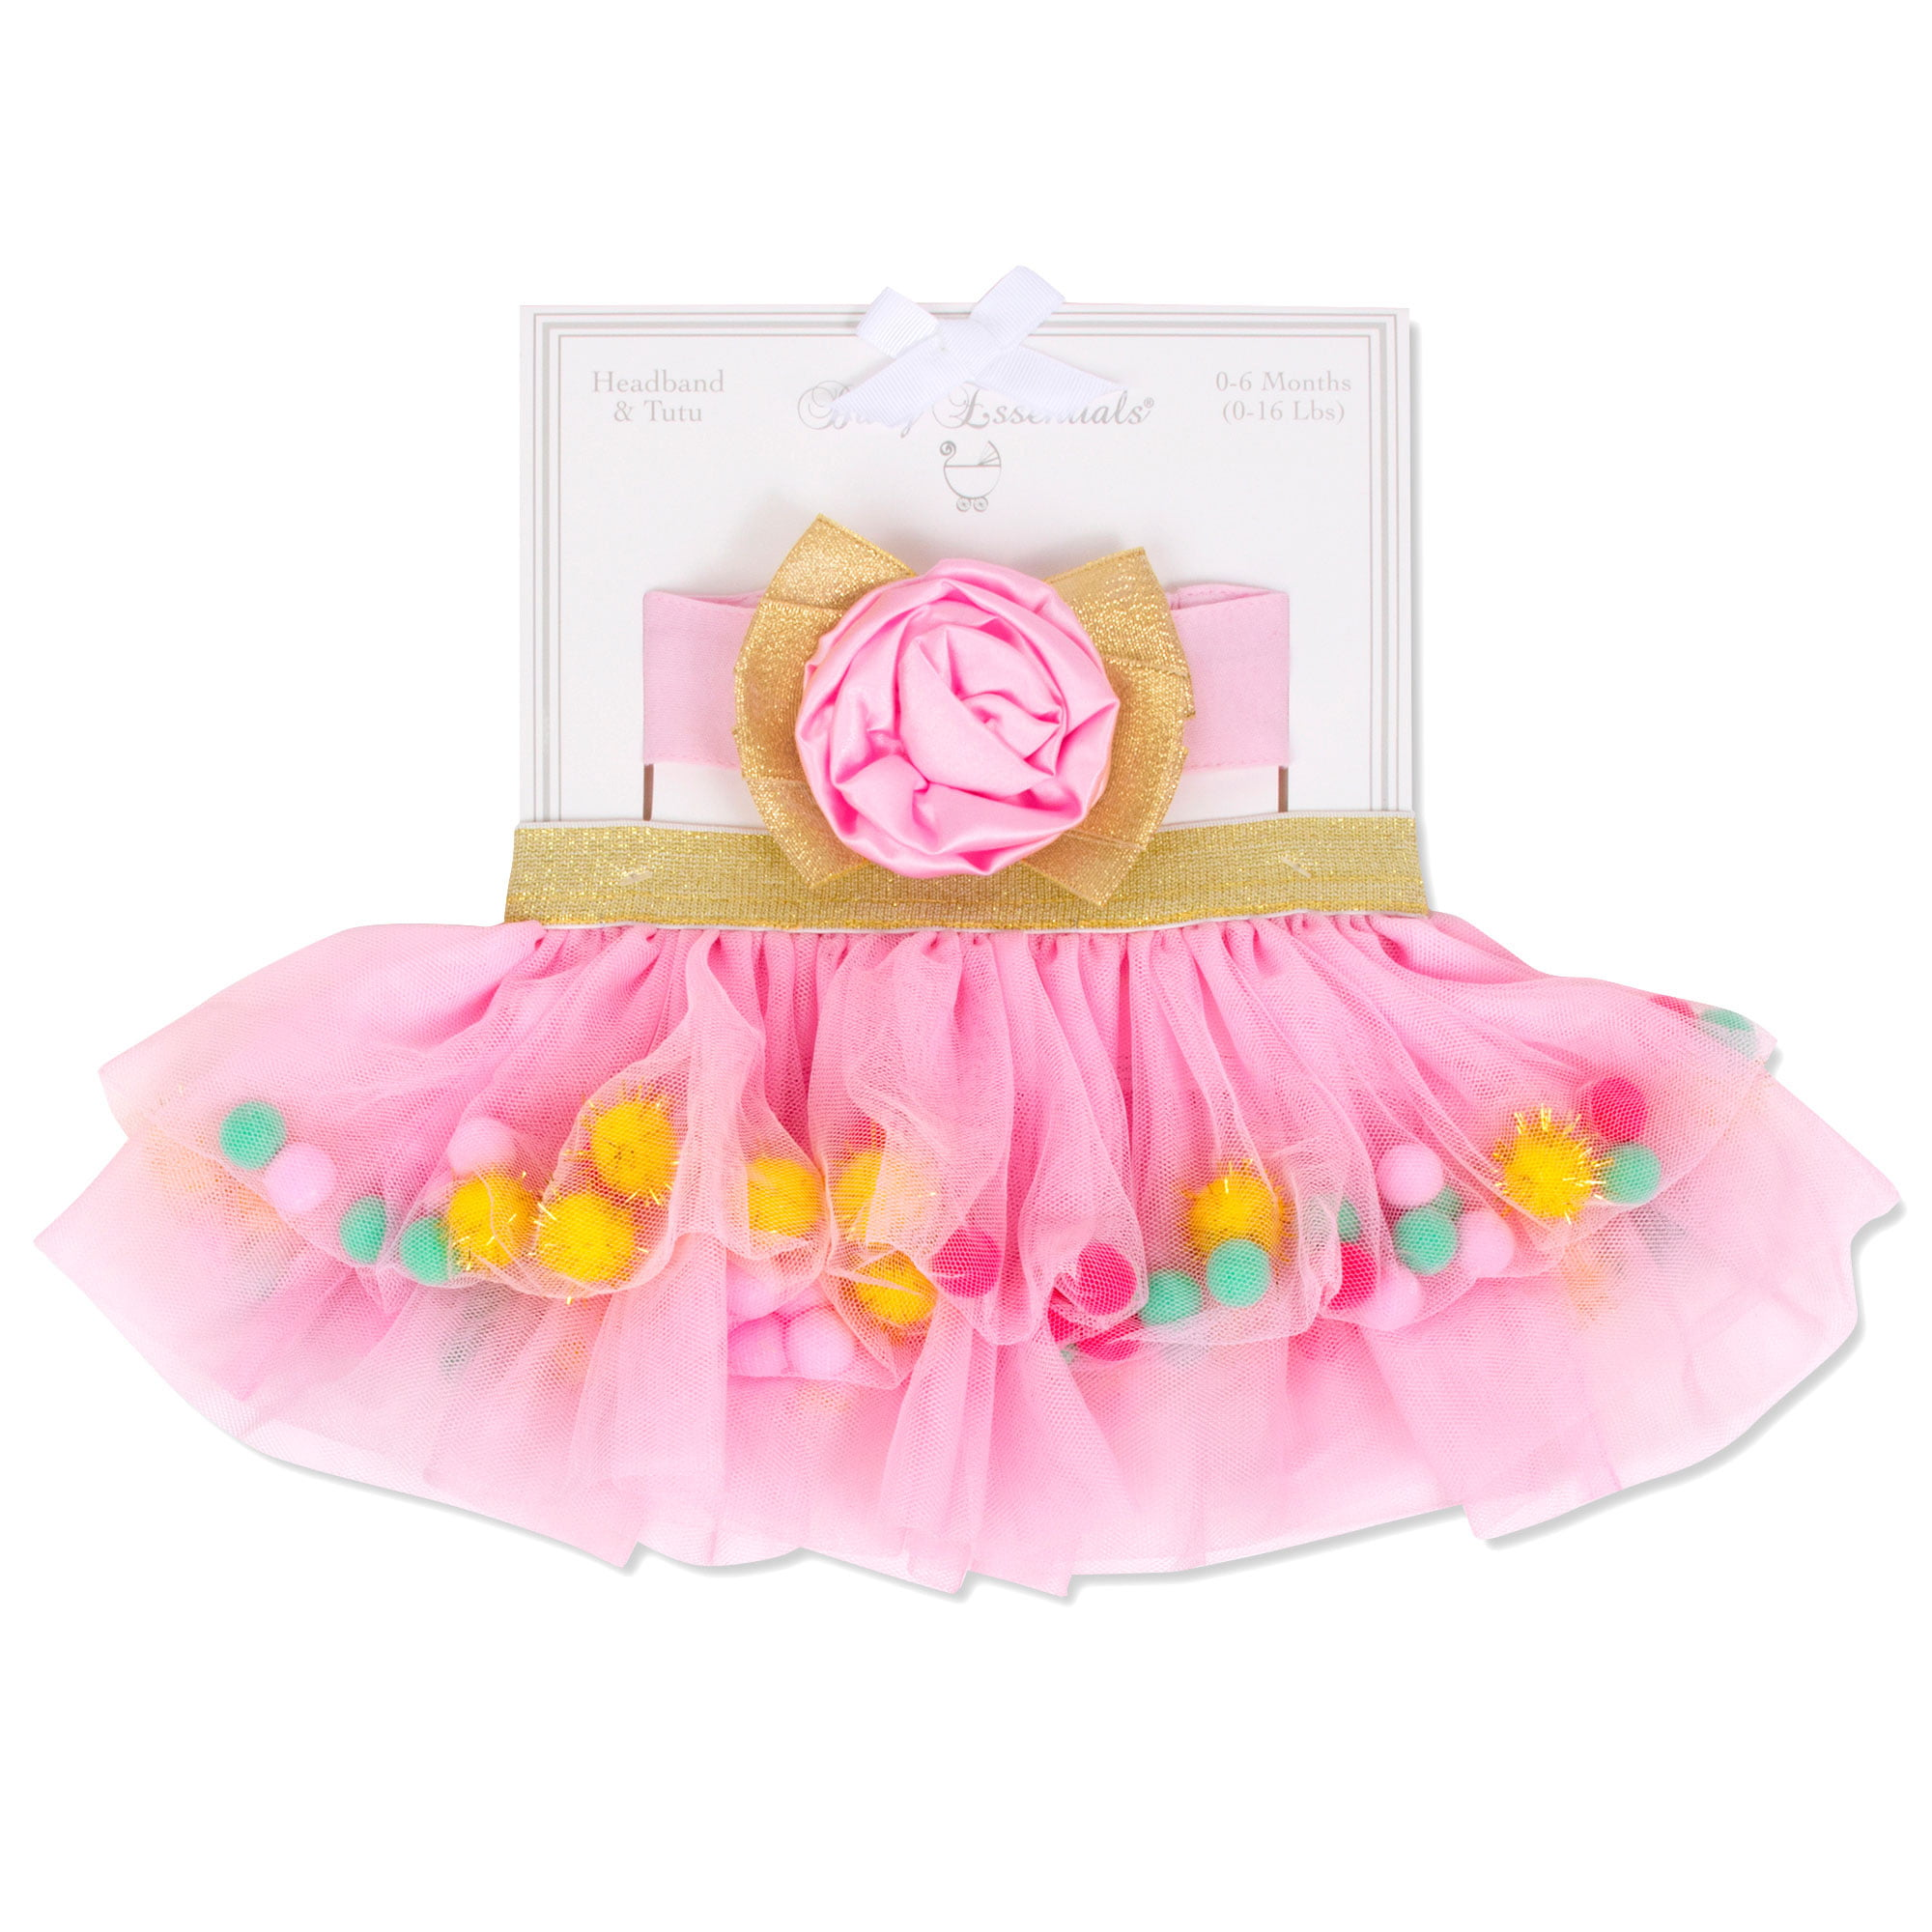 Pink Photo Prop Newborn Baby or Adult Skirt Pink Tutu Infant Girl Toddler